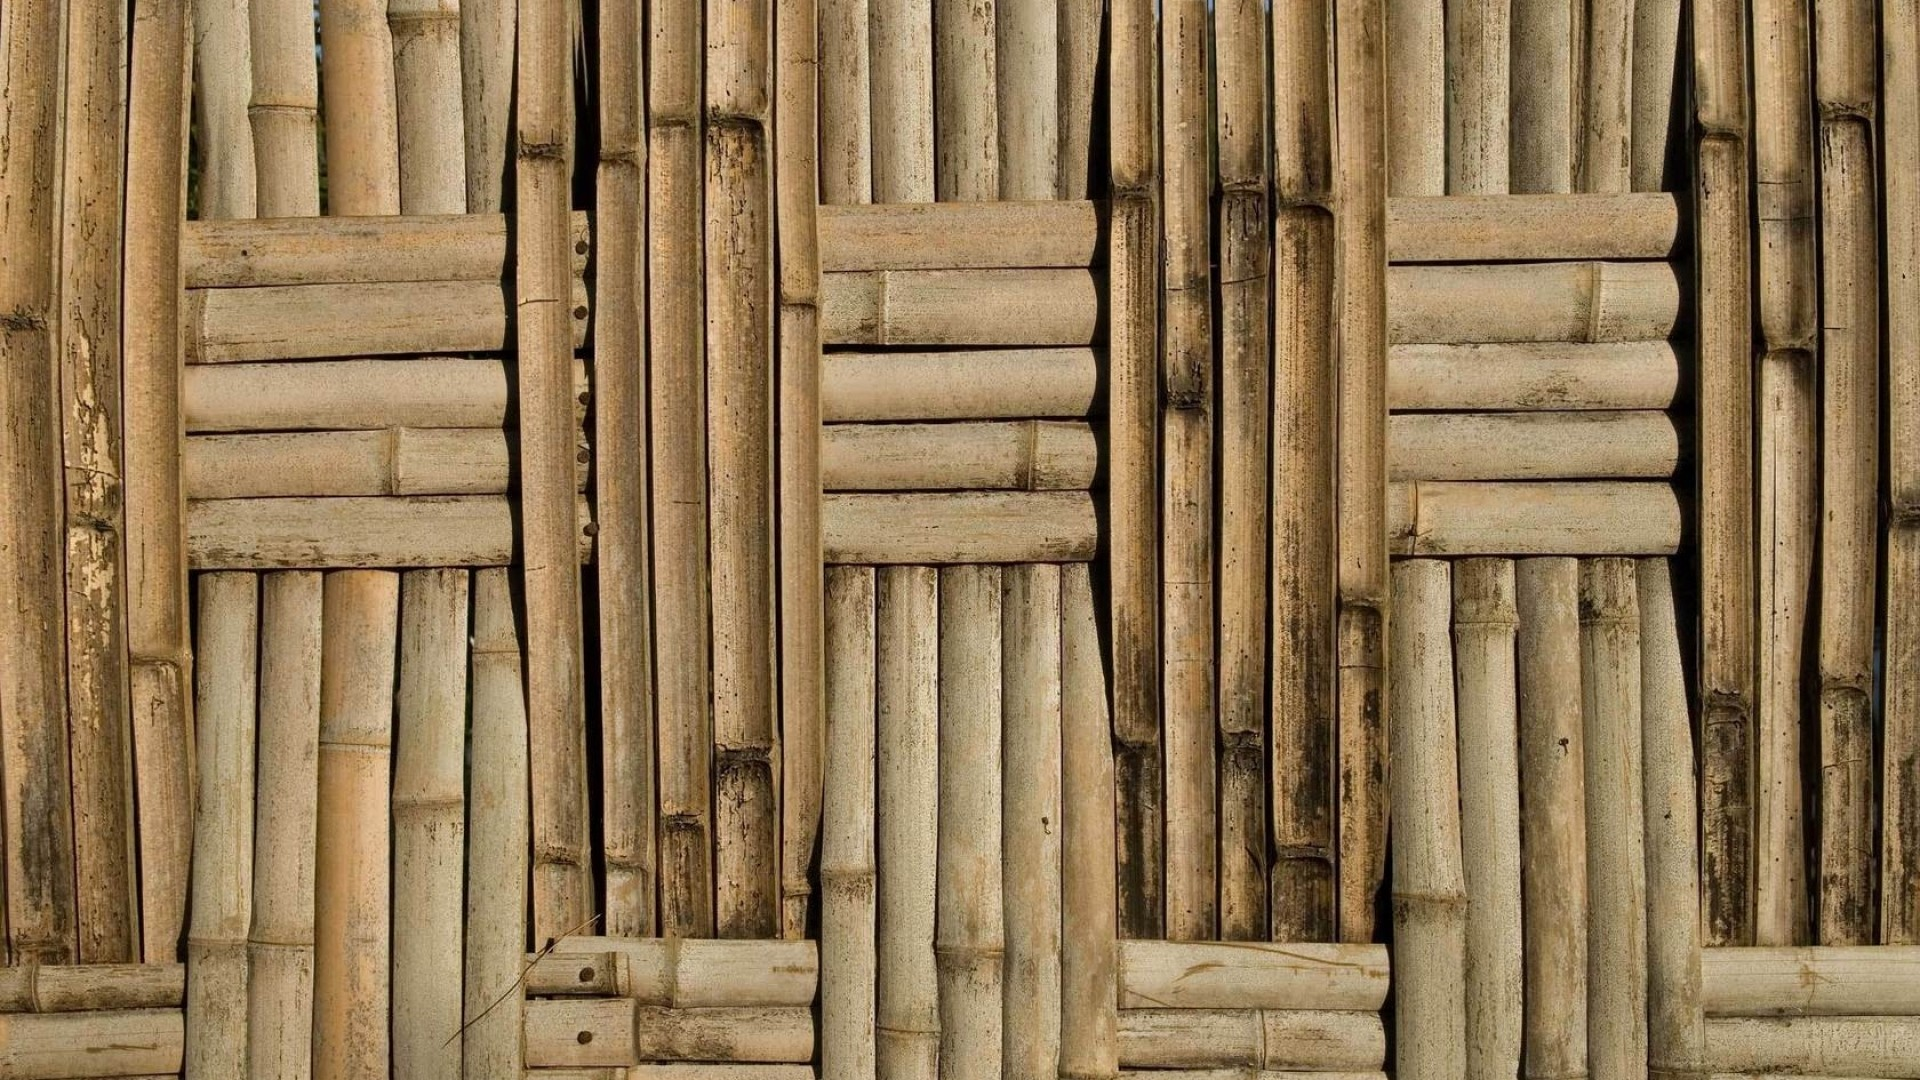 1920x1080 bamboo wallpaper hd for desktop